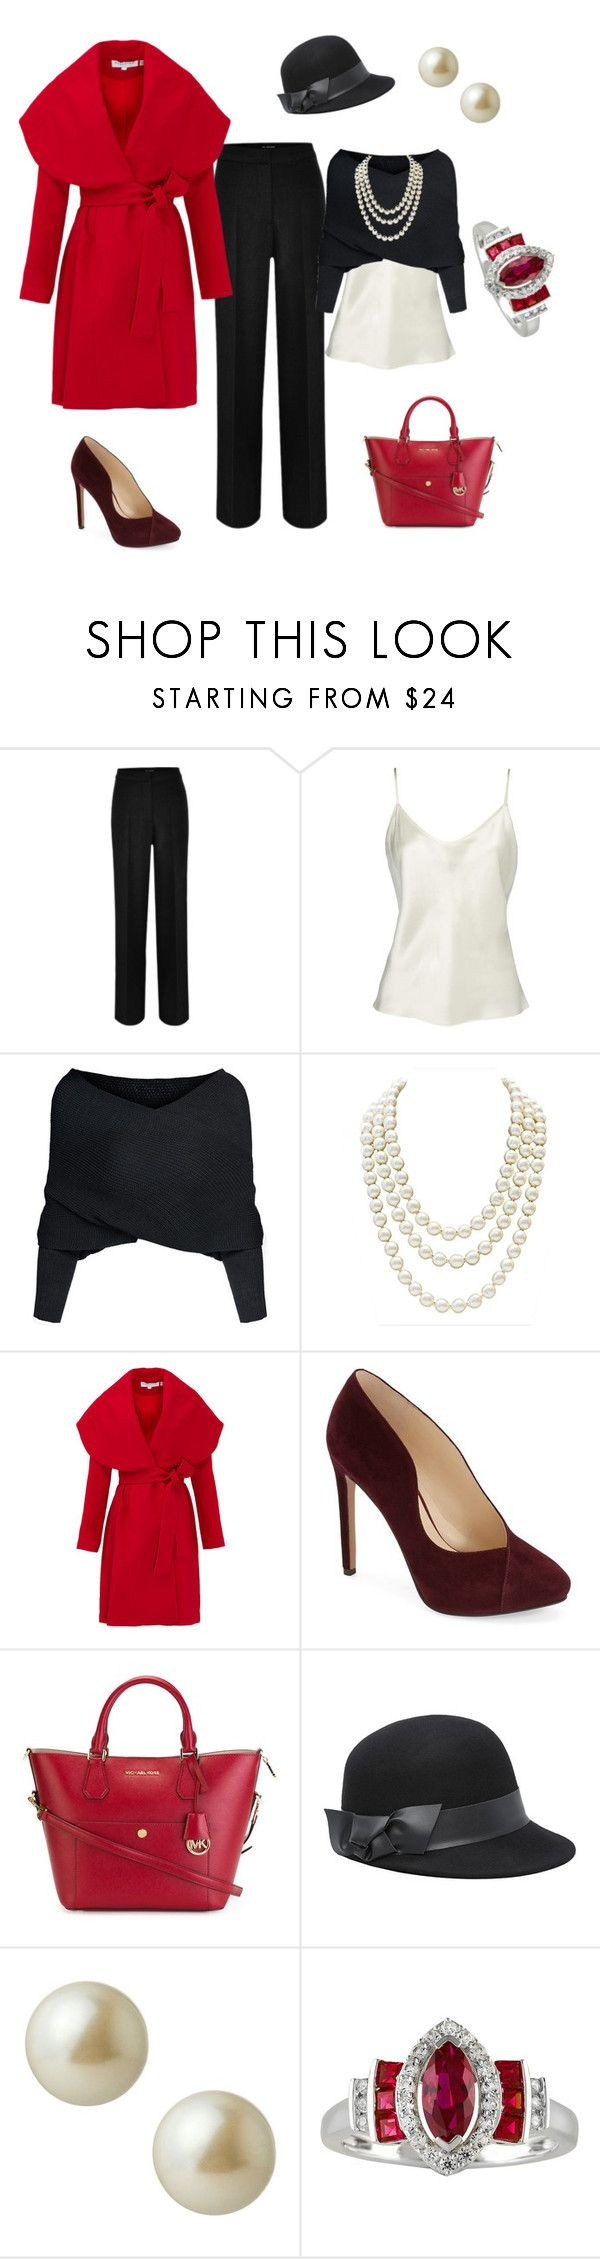 """""""Xmas styling ideas $1"""" by antiadamo on Polyvore featuring Chanel, Keepsake the Label, Nine West, MICHAEL Michael Kors, Bebe and Carolee"""